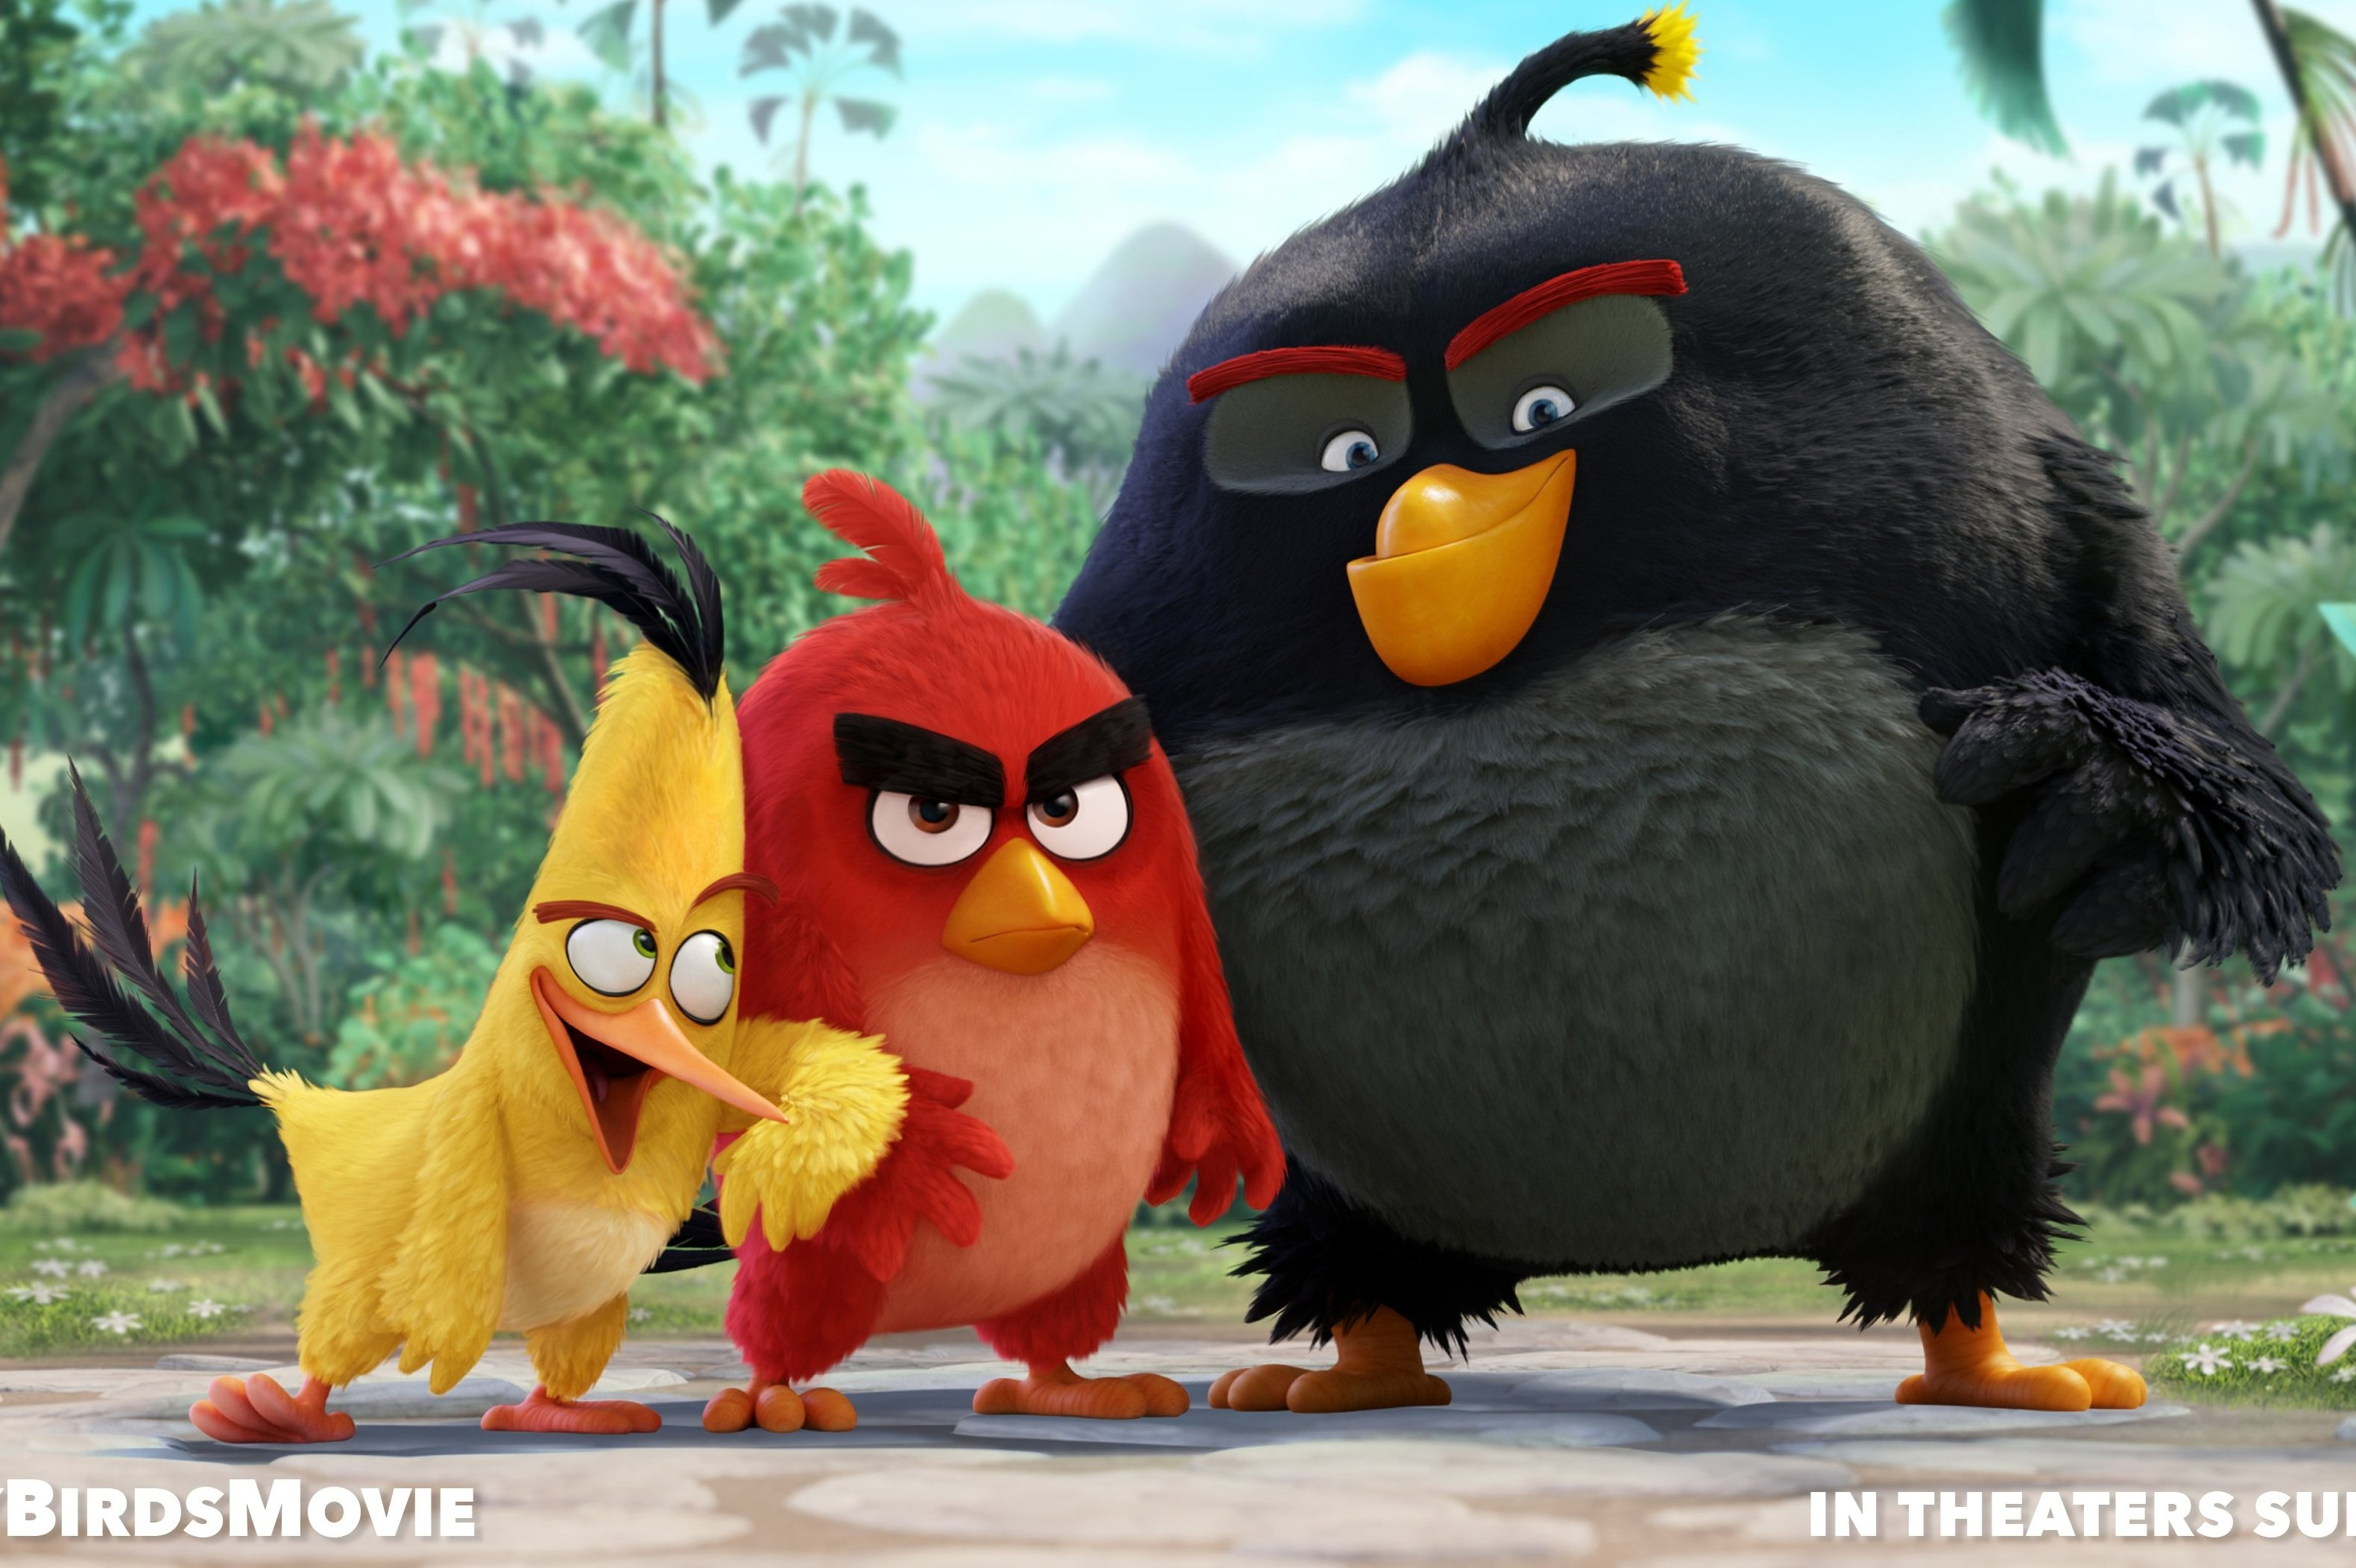 http://images.eurogamer.net/2013/articles/1/7/1/1/1/2/6/angry-birds-film-casts-peter-dinklage-bill-hader-and-jason-sudeikis-1412184068079.jpg